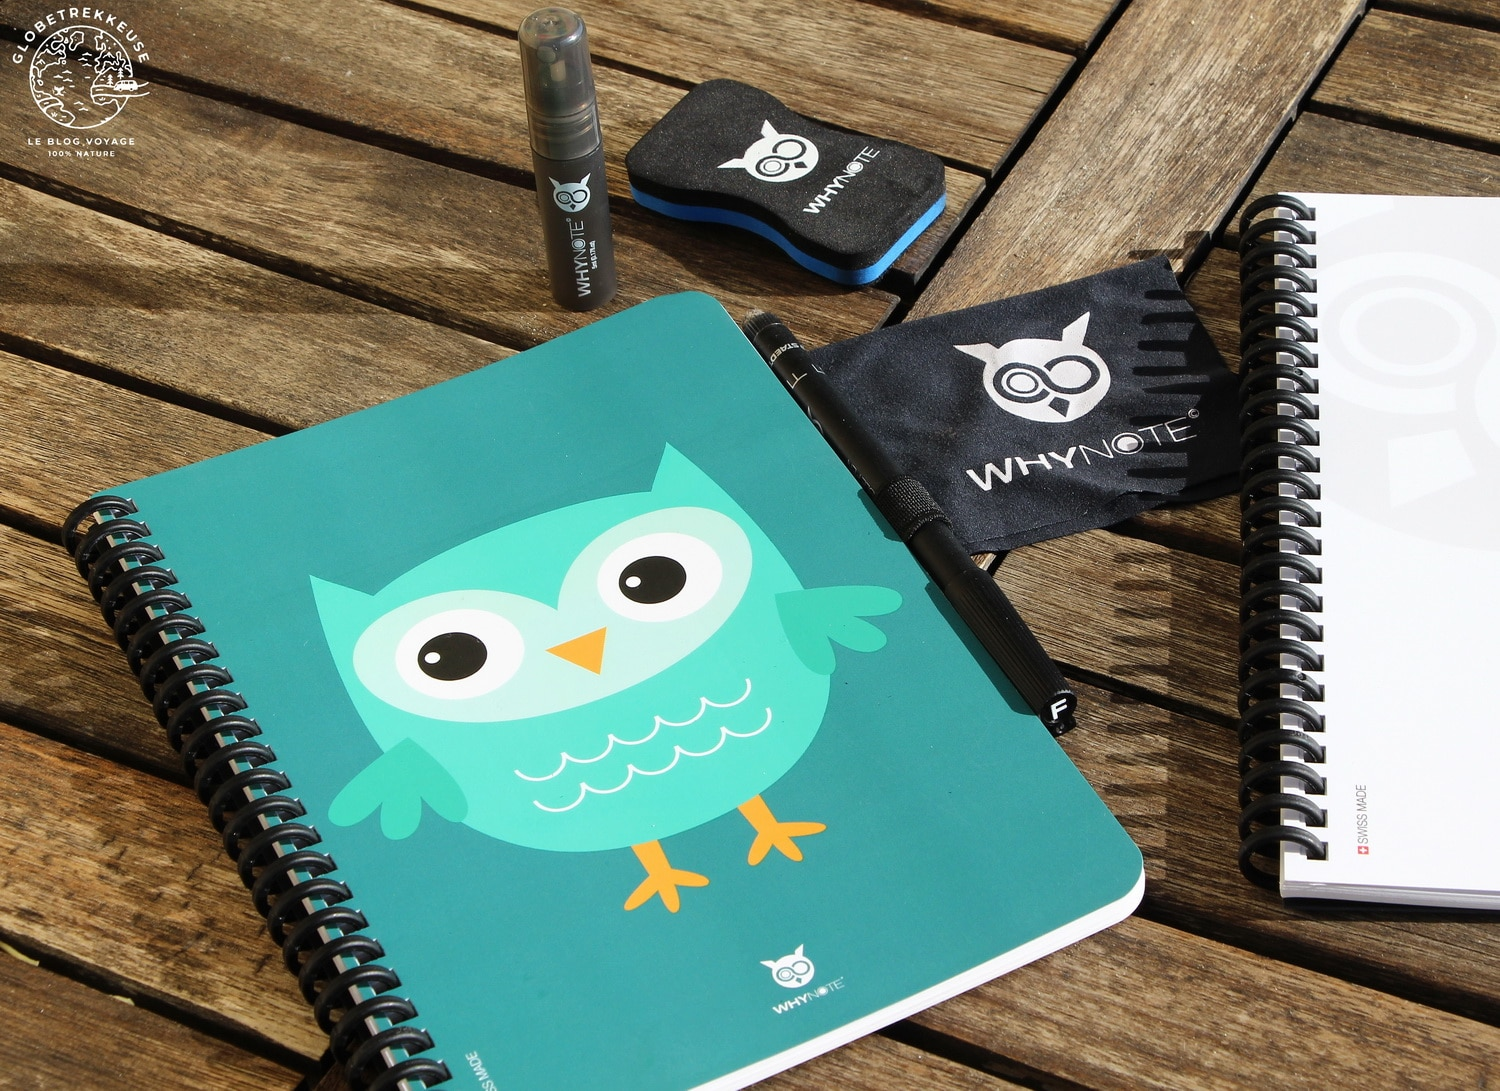 carnet notes whynote ecologique